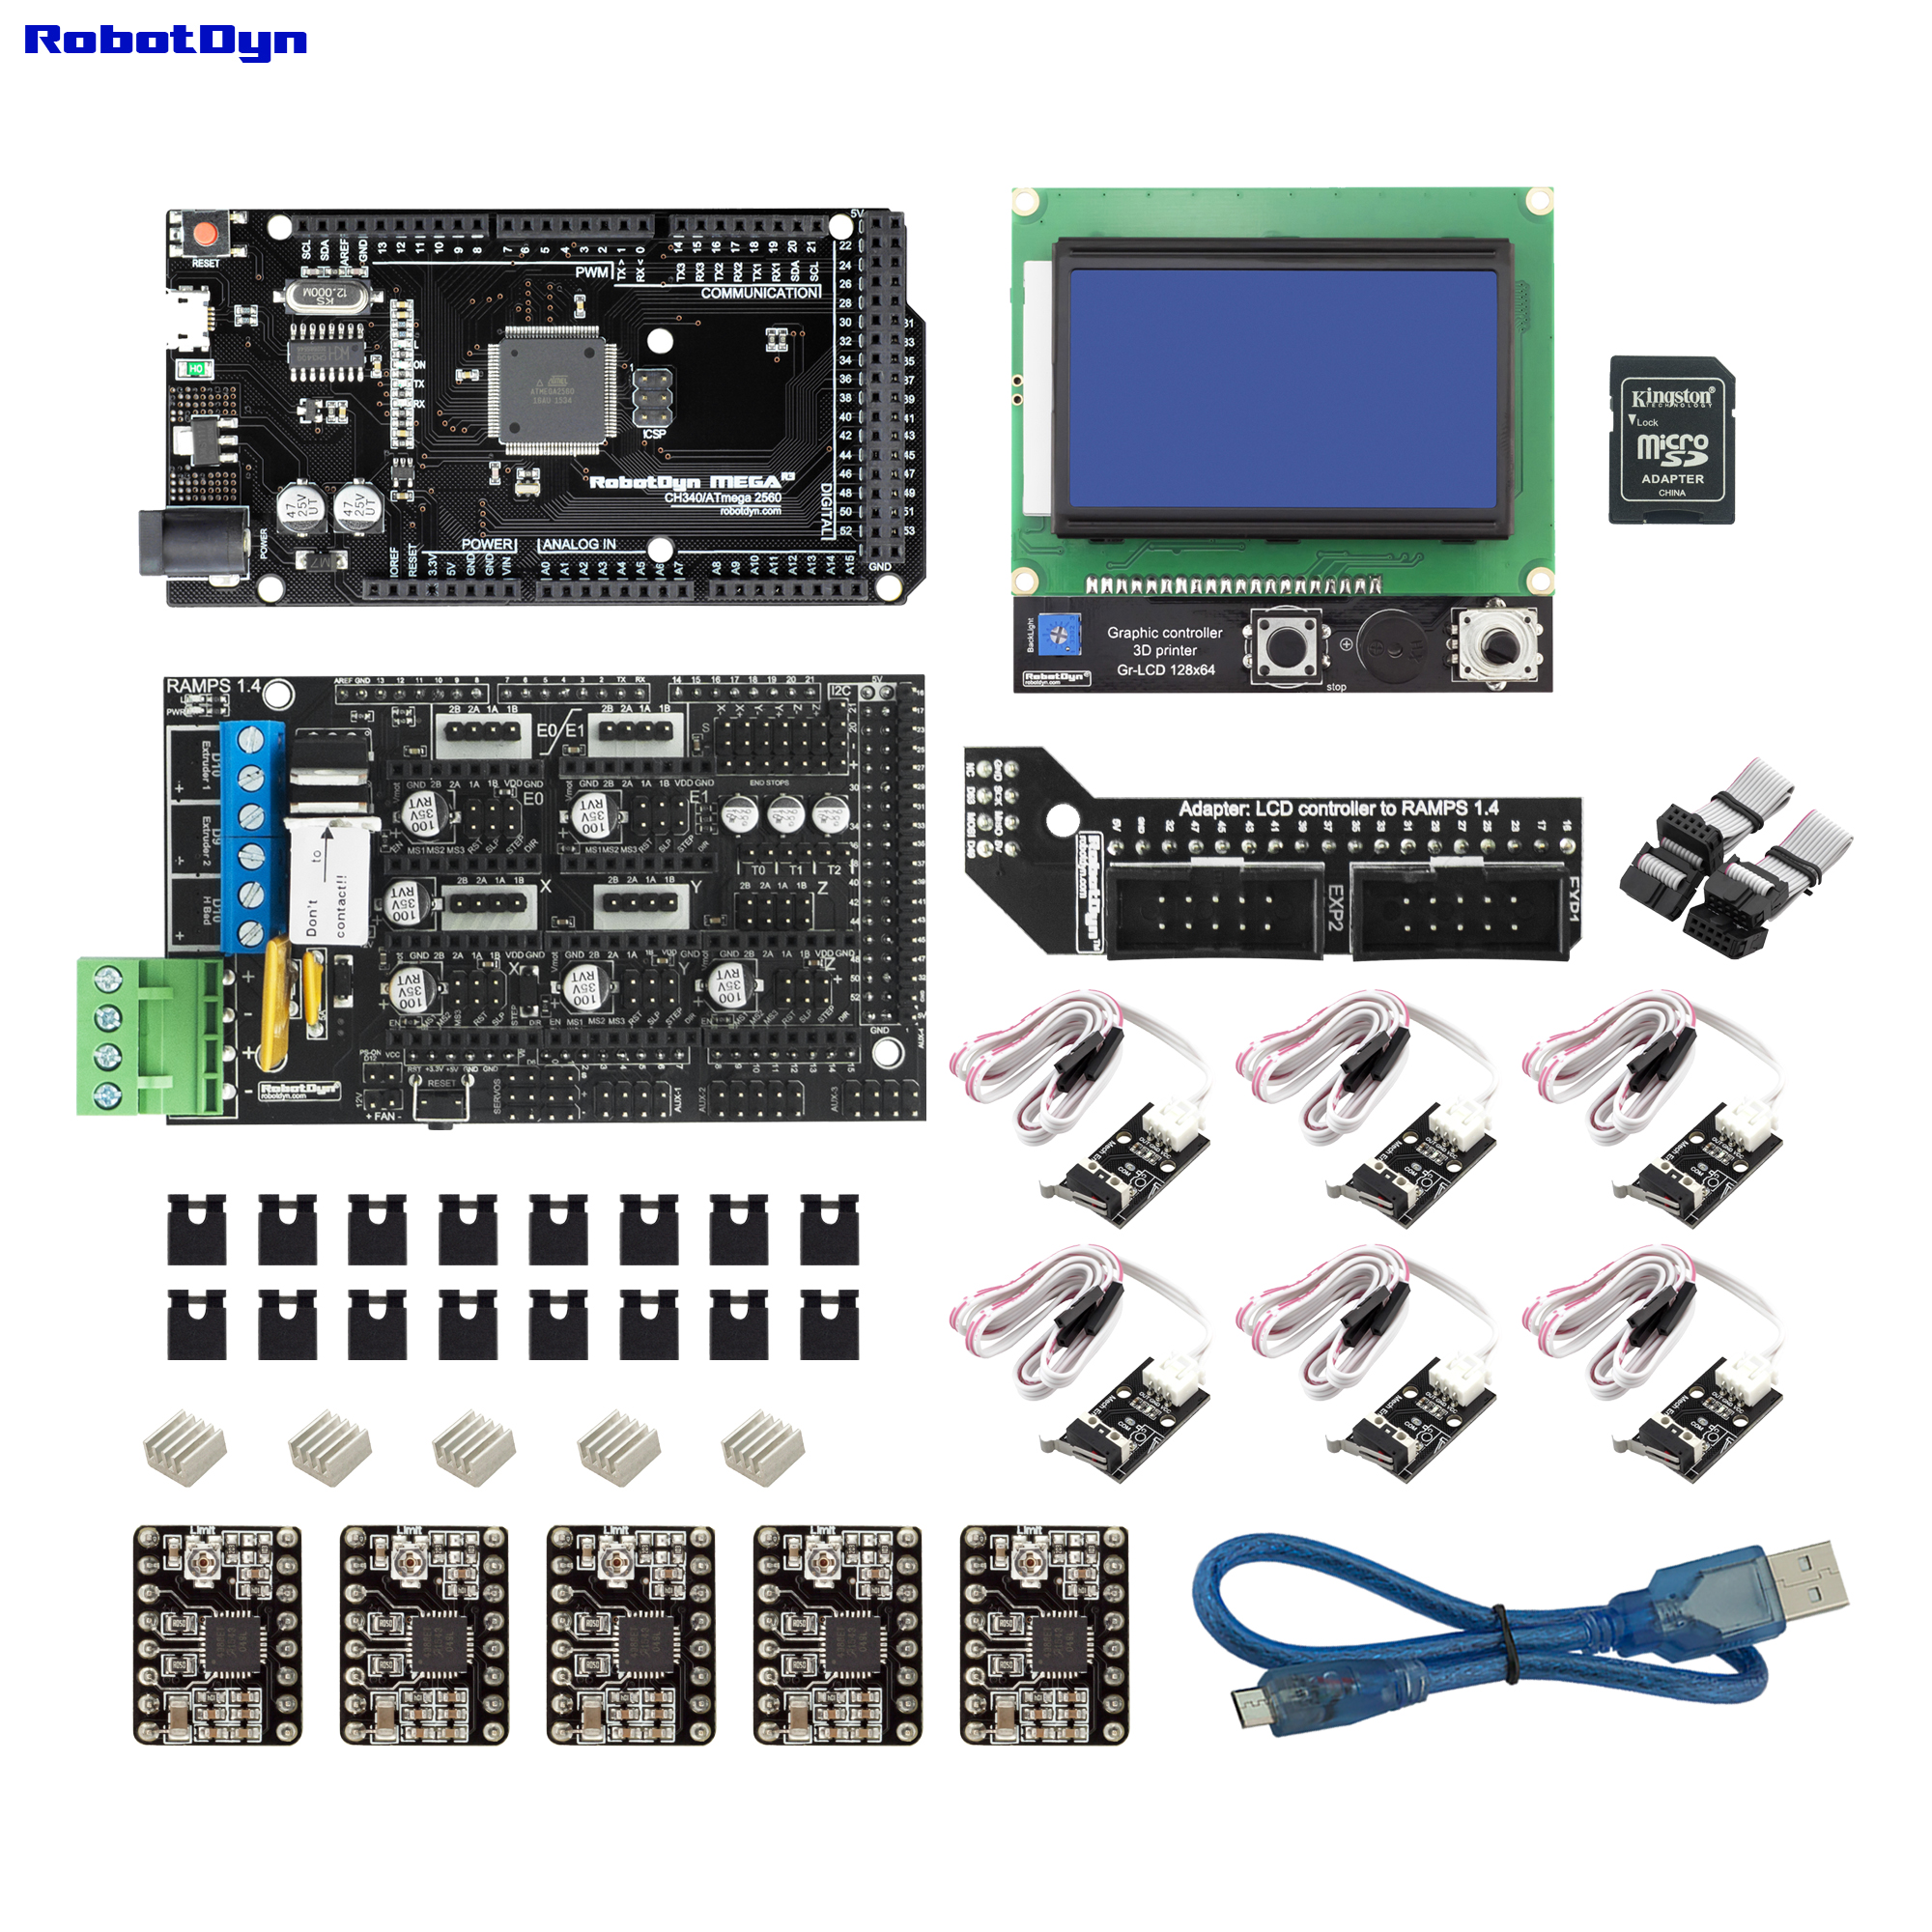 3D printer & CNC KIT2. MEGA 2560 + RAMPS 1.4 + Graphic 128x64 controller + drivers + End-stop, Compatible for Arduino and RepRap image